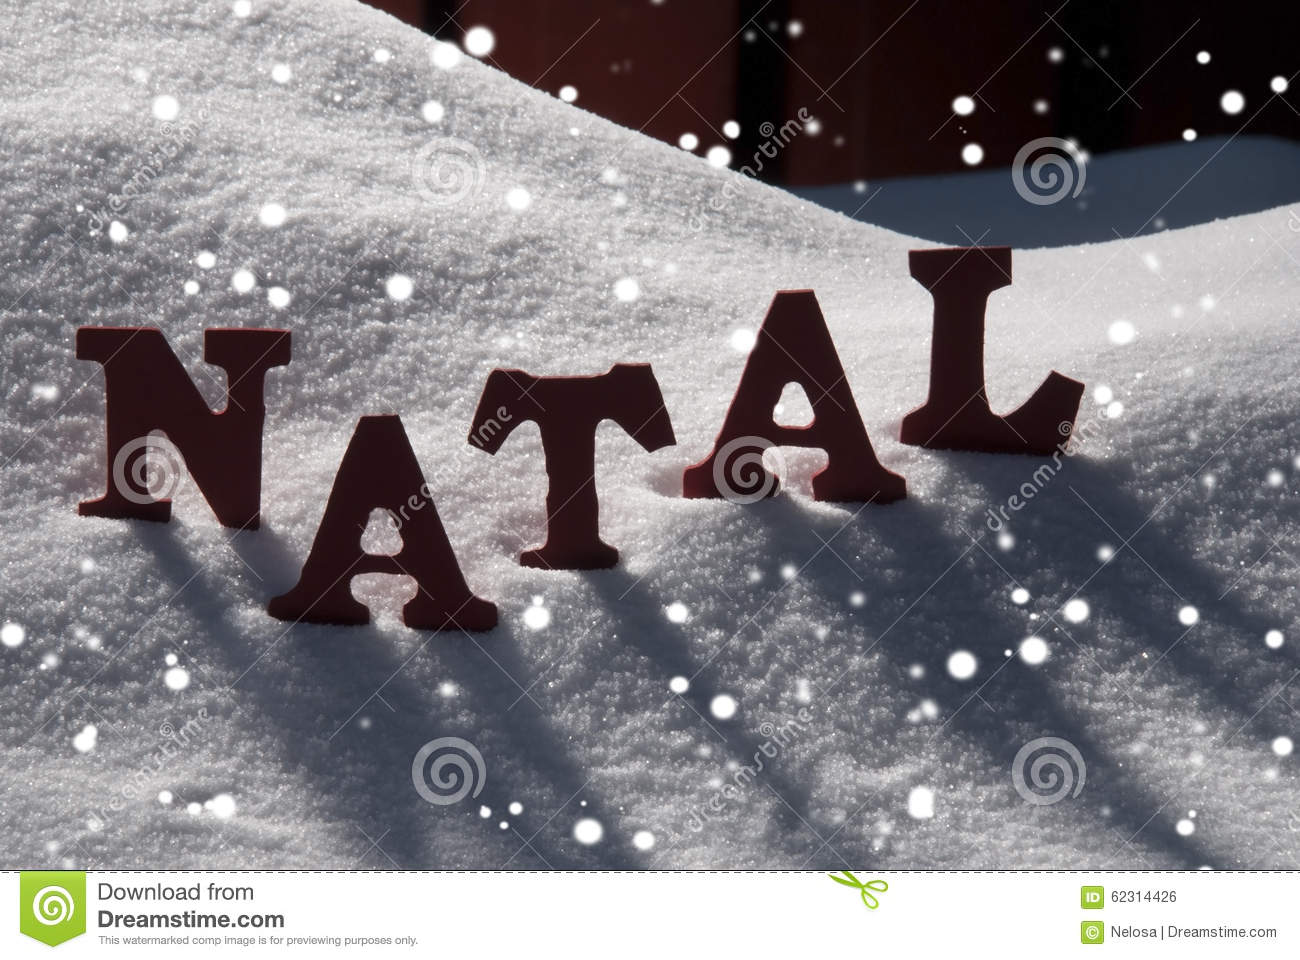 Card With Snow And Word Natal Mean Christmas, Snowflakes Stock Photo ...